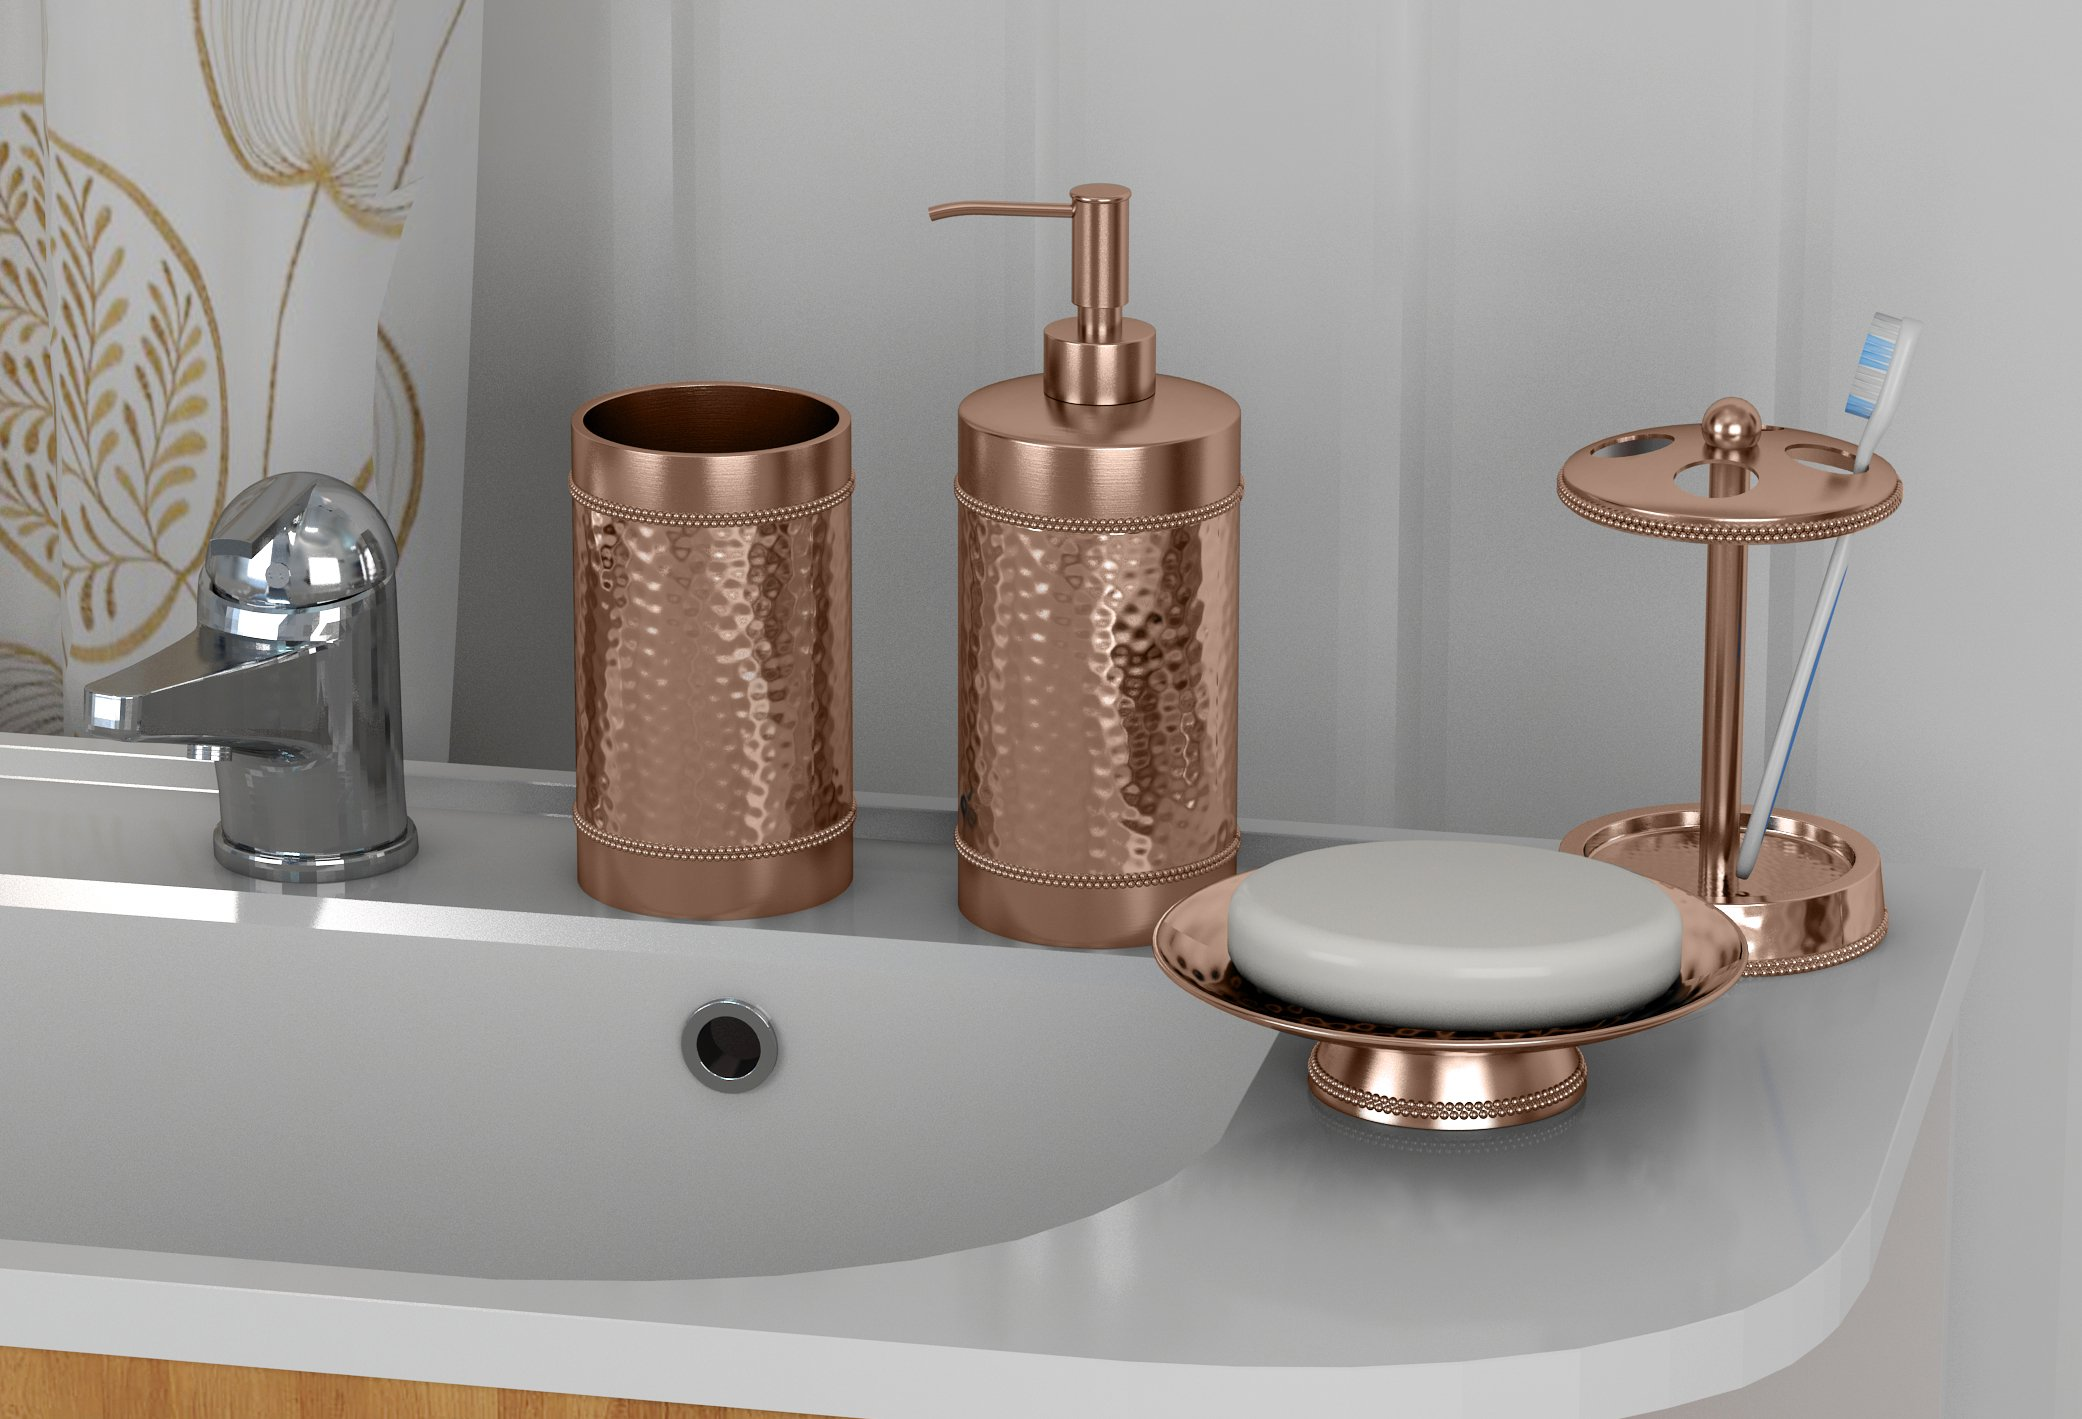 nu steel NuSteel Hammered, Tumbler & Lotion Copper set/4-Soap Dish,TBH,Tumbler,Lotion Pump